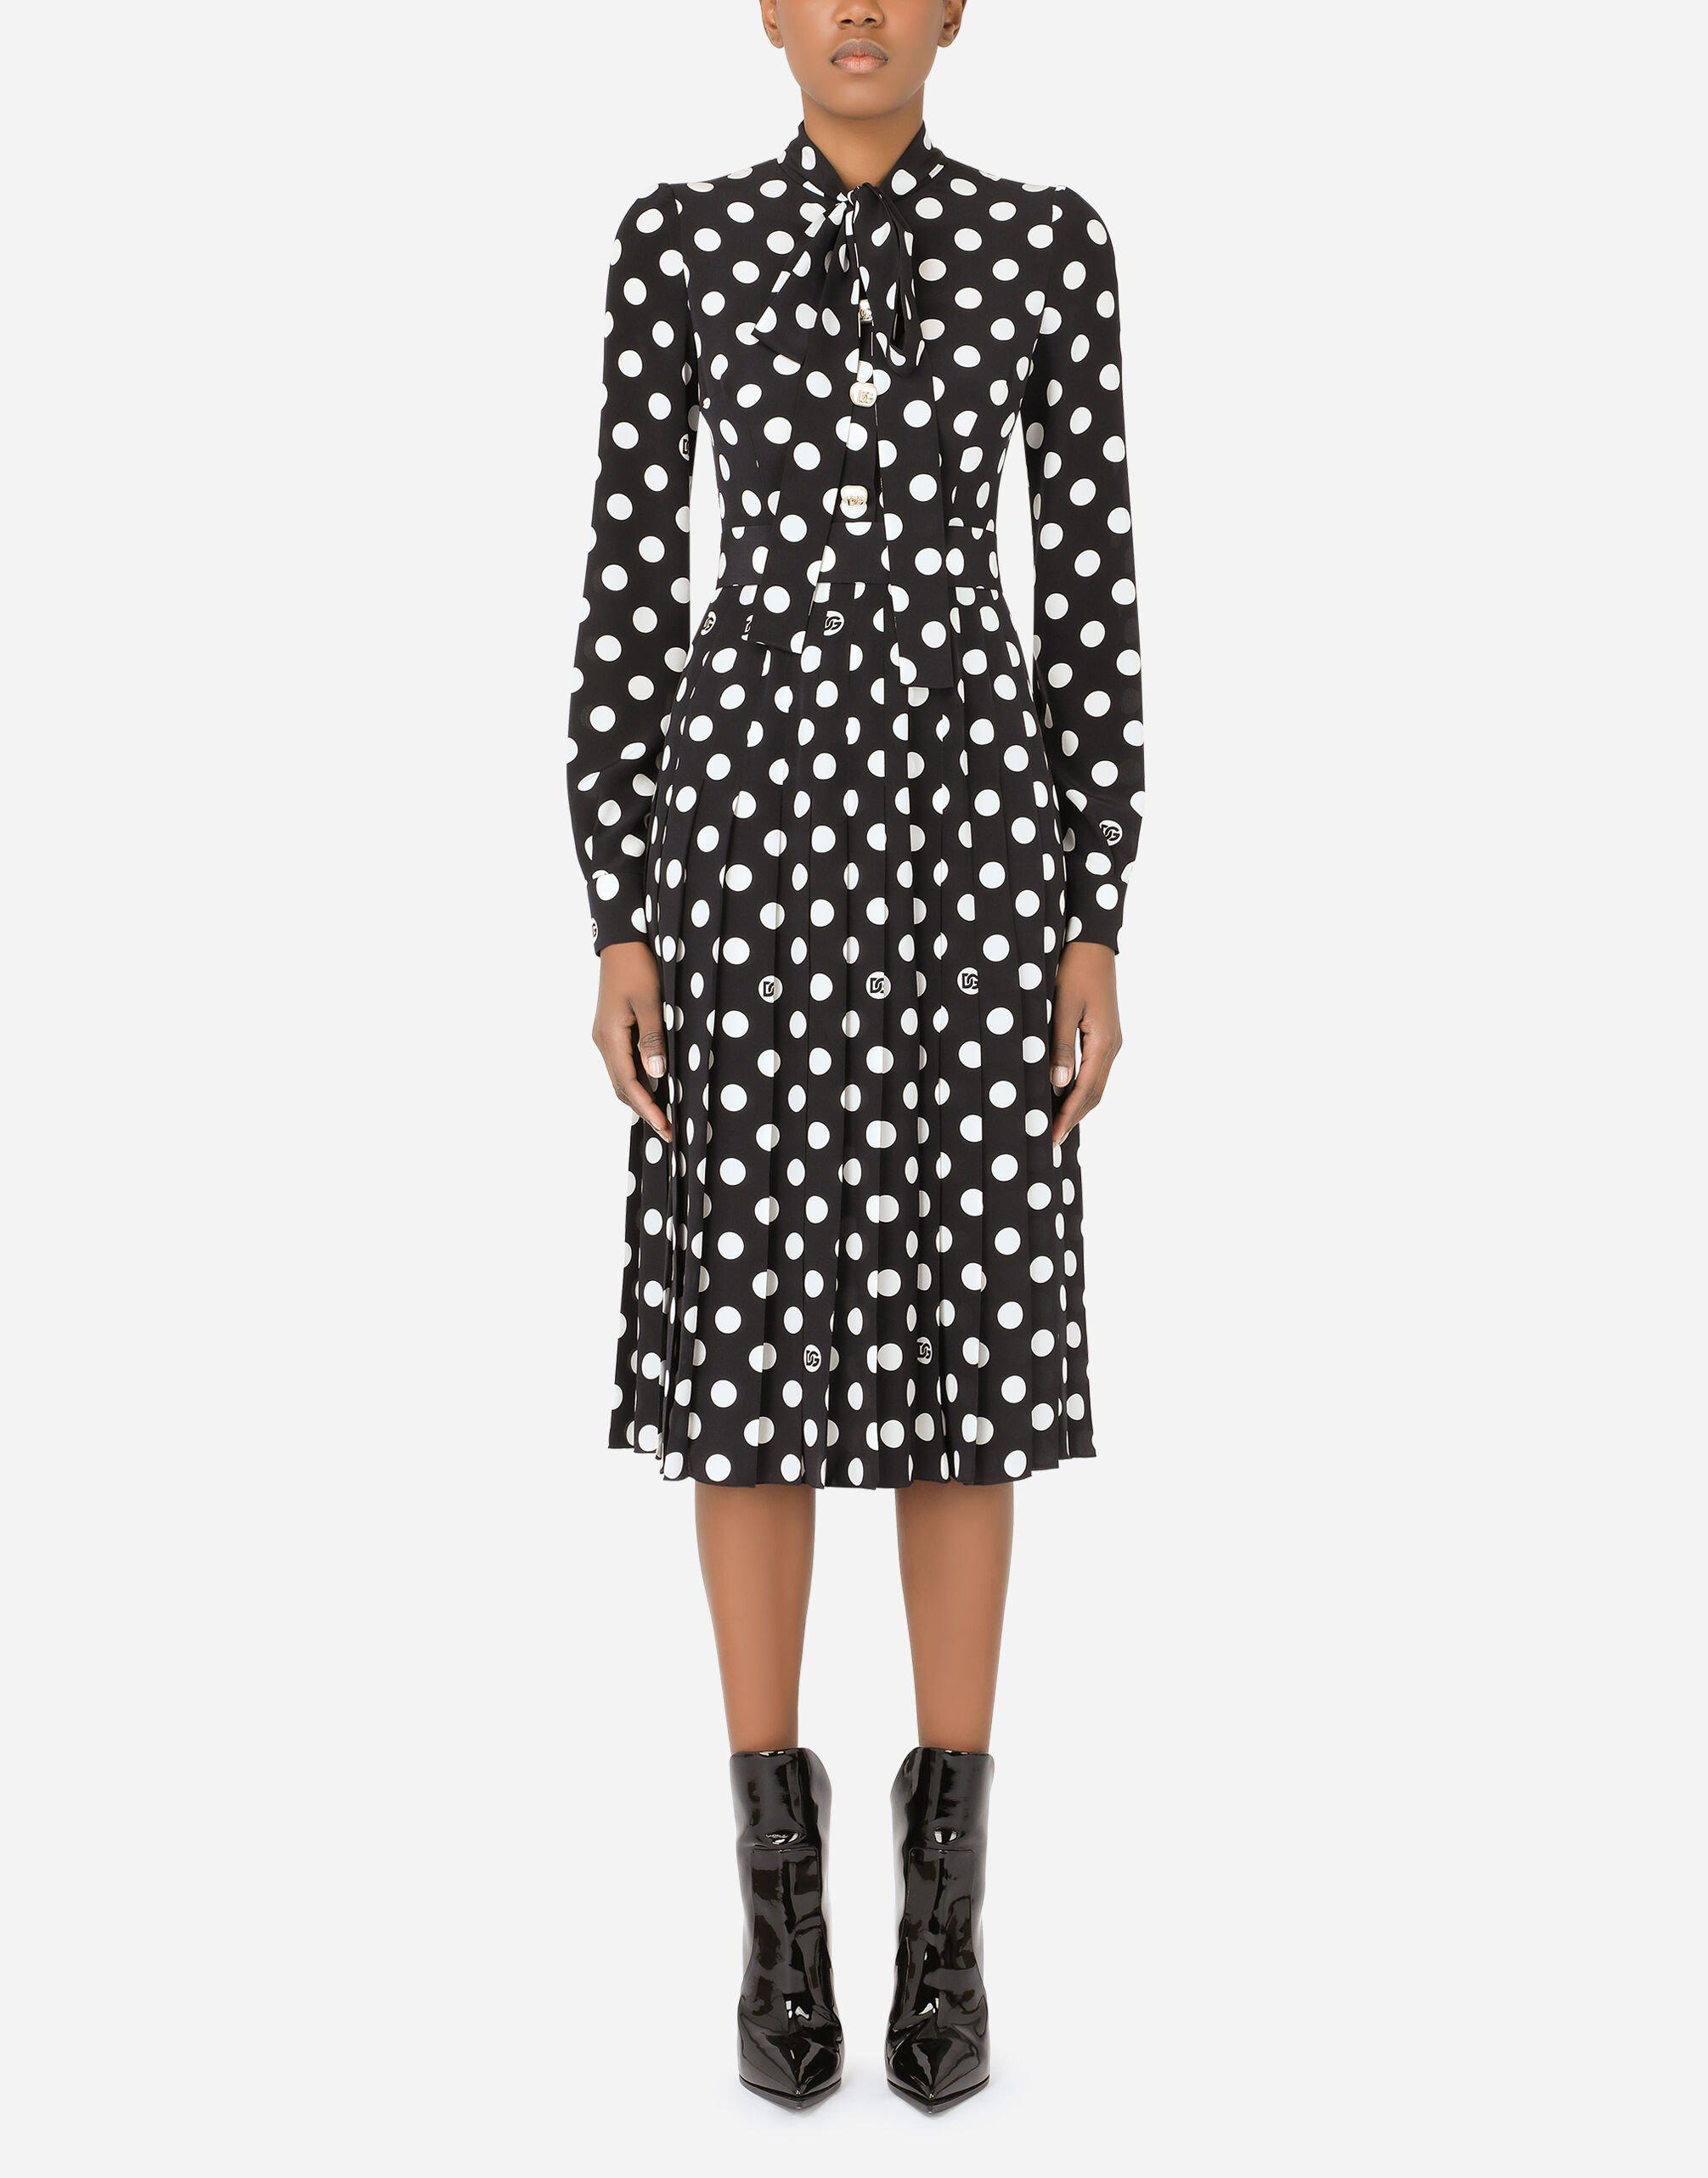 Crepe de chine midi dress with polka-dot print with pleated skirt and pearl DG embellishment